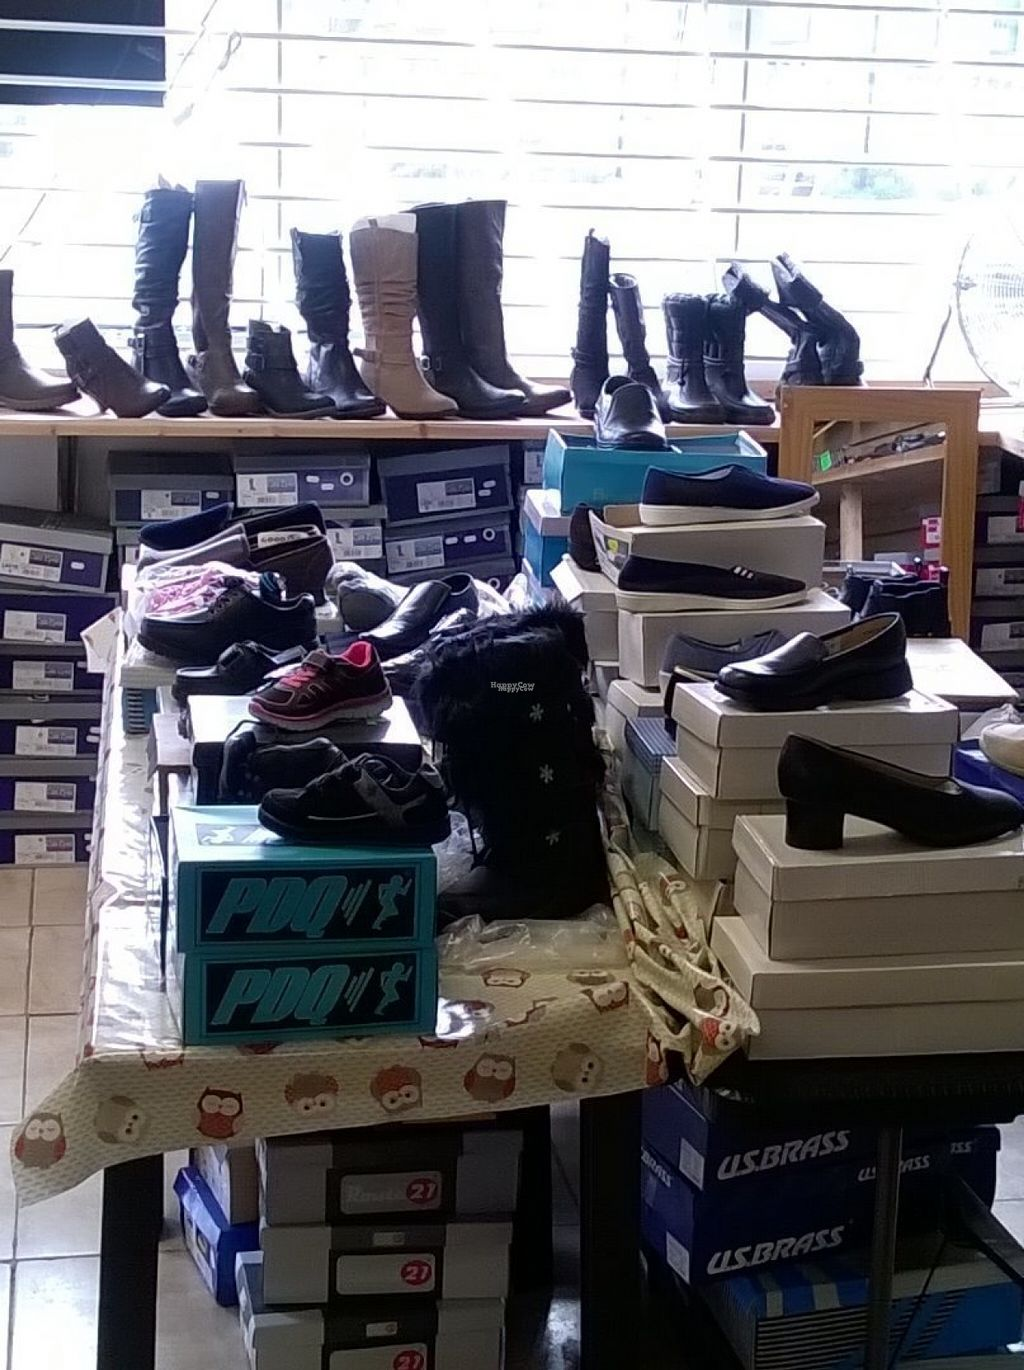 """Photo of Alternative Stores  by <a href=""""/members/profile/deadpledge"""">deadpledge</a> <br/>Vegan shoes <br/> August 15, 2016  - <a href='/contact/abuse/image/15169/168895'>Report</a>"""